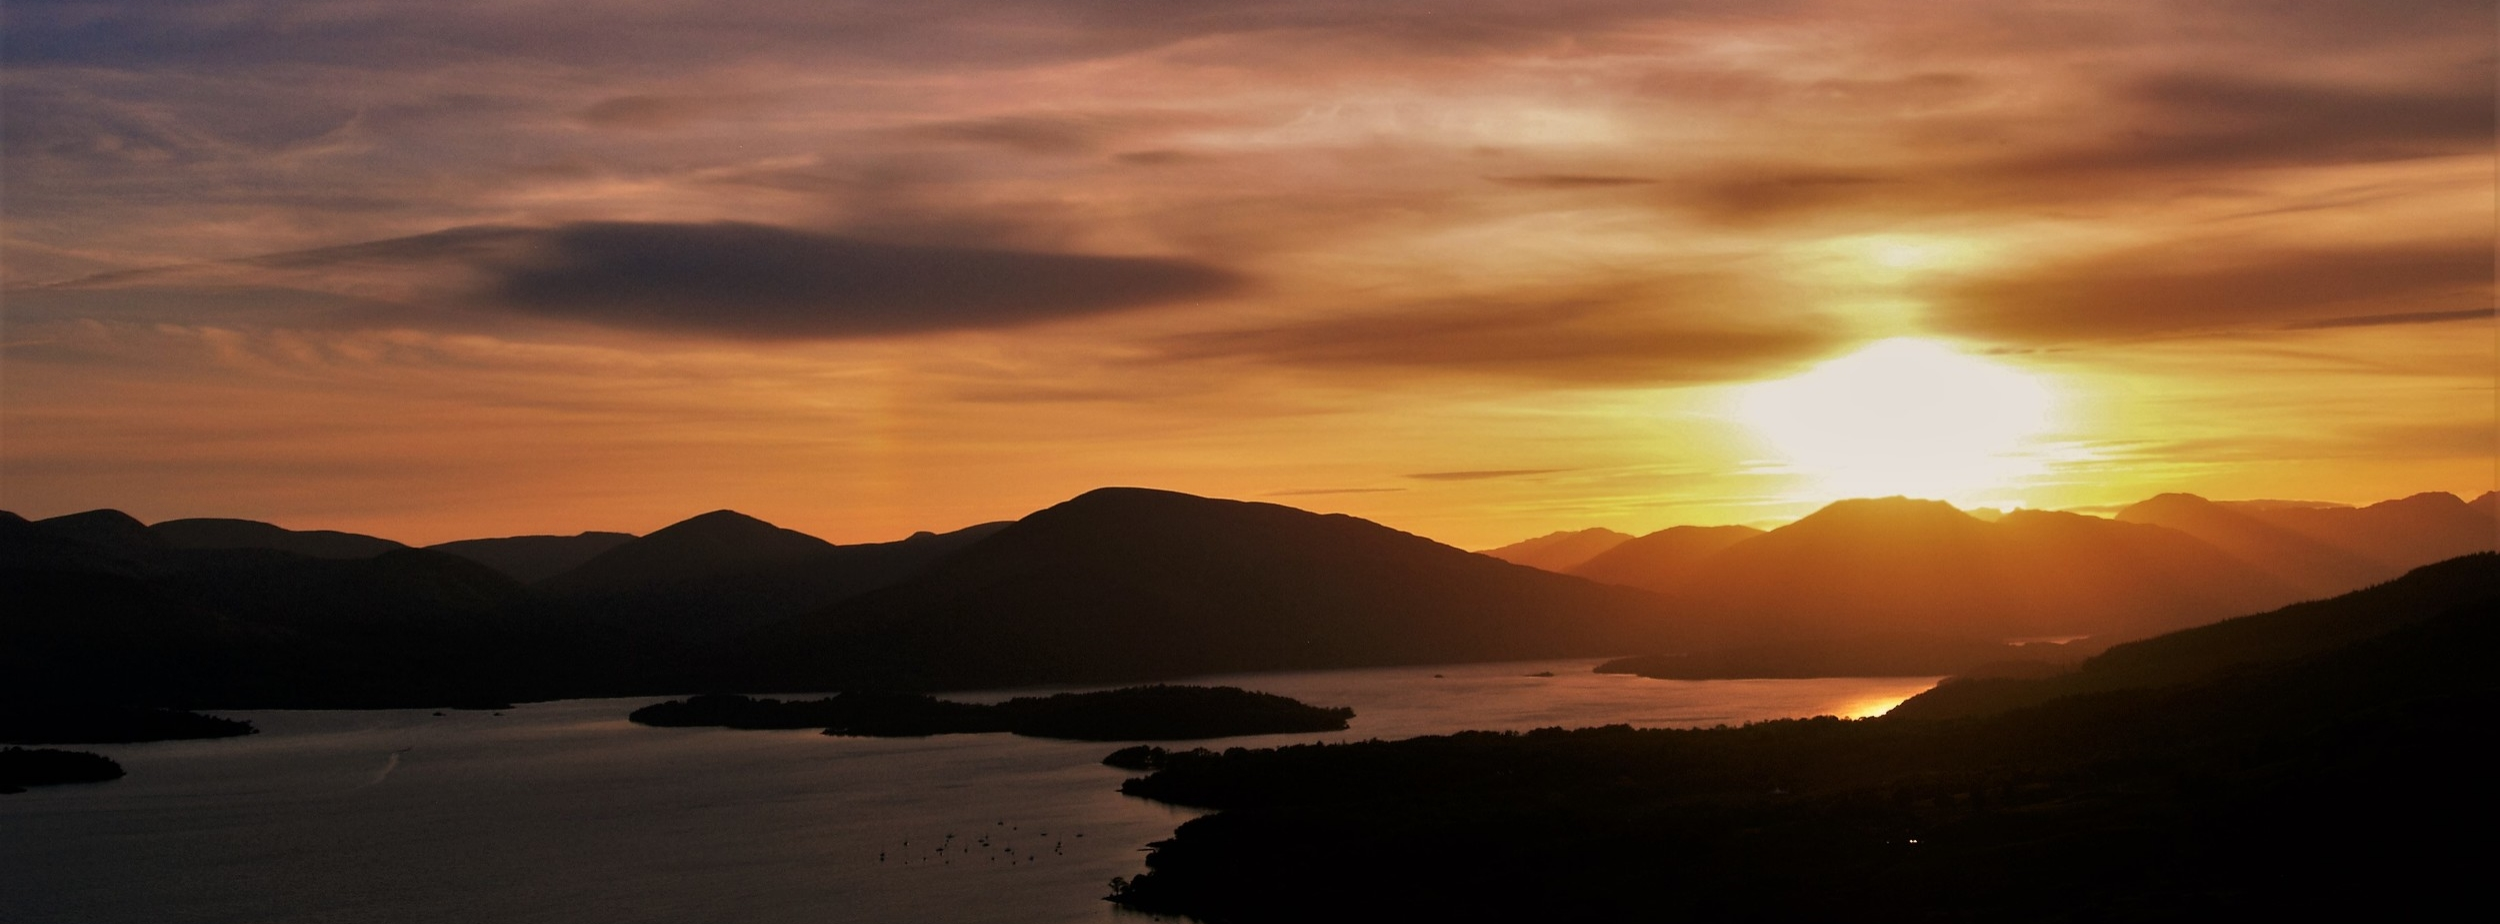 loch-lomond-sunset